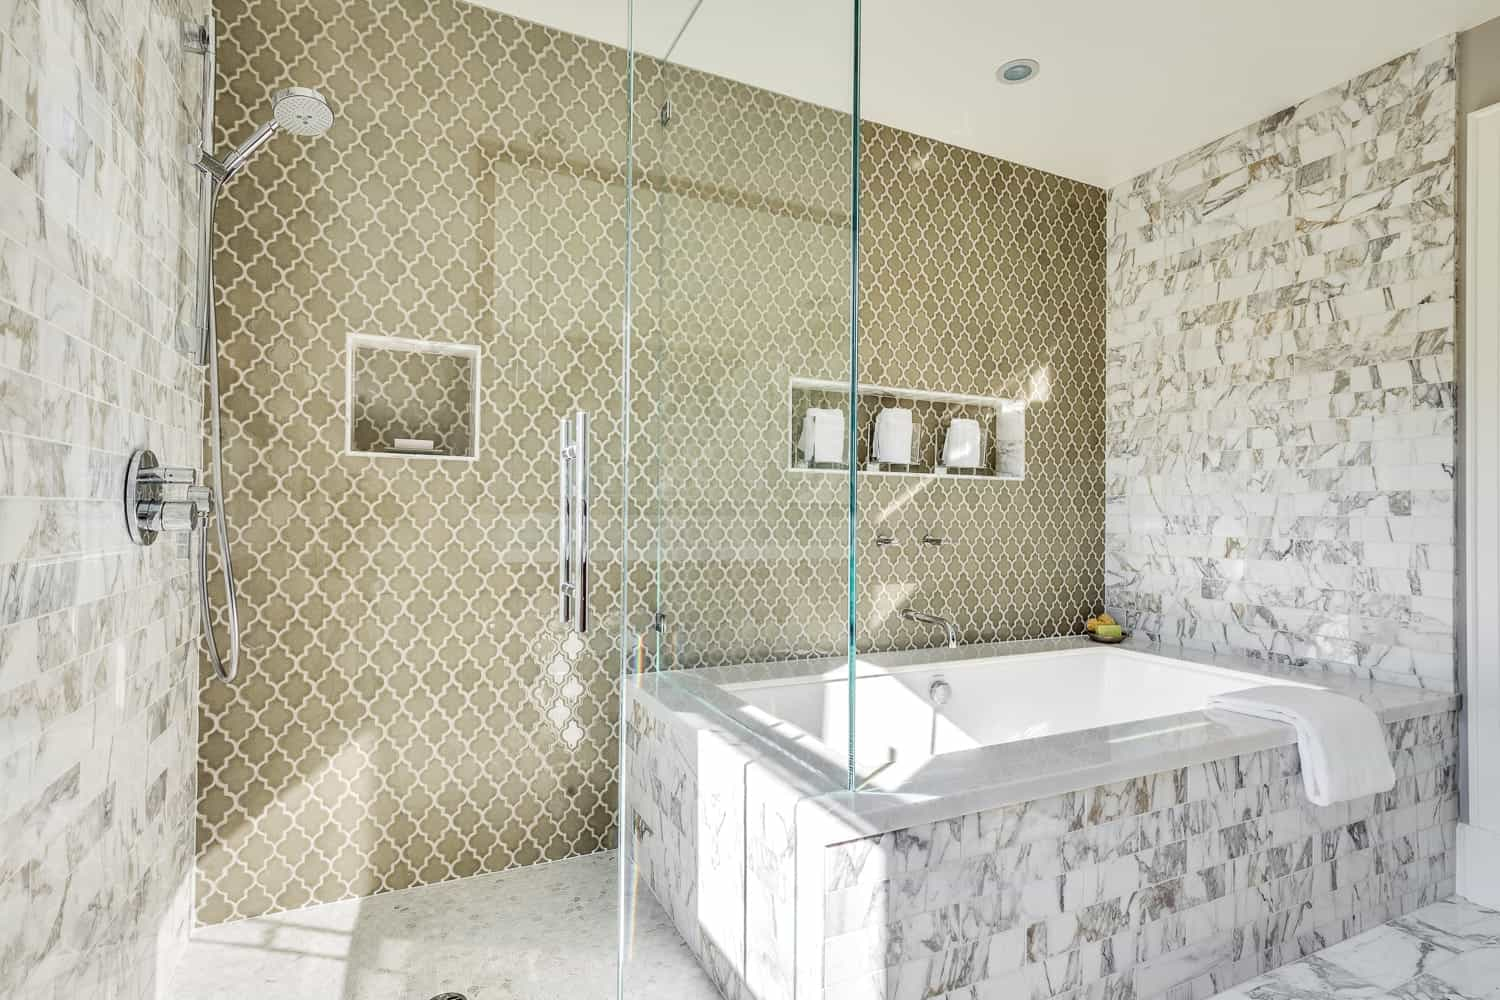 Large Modern Bathroom Featuring Combination With A Glass Shower And Jacuzzi Tub With Patterned Tile Accent Wall (Image 9 of 16)